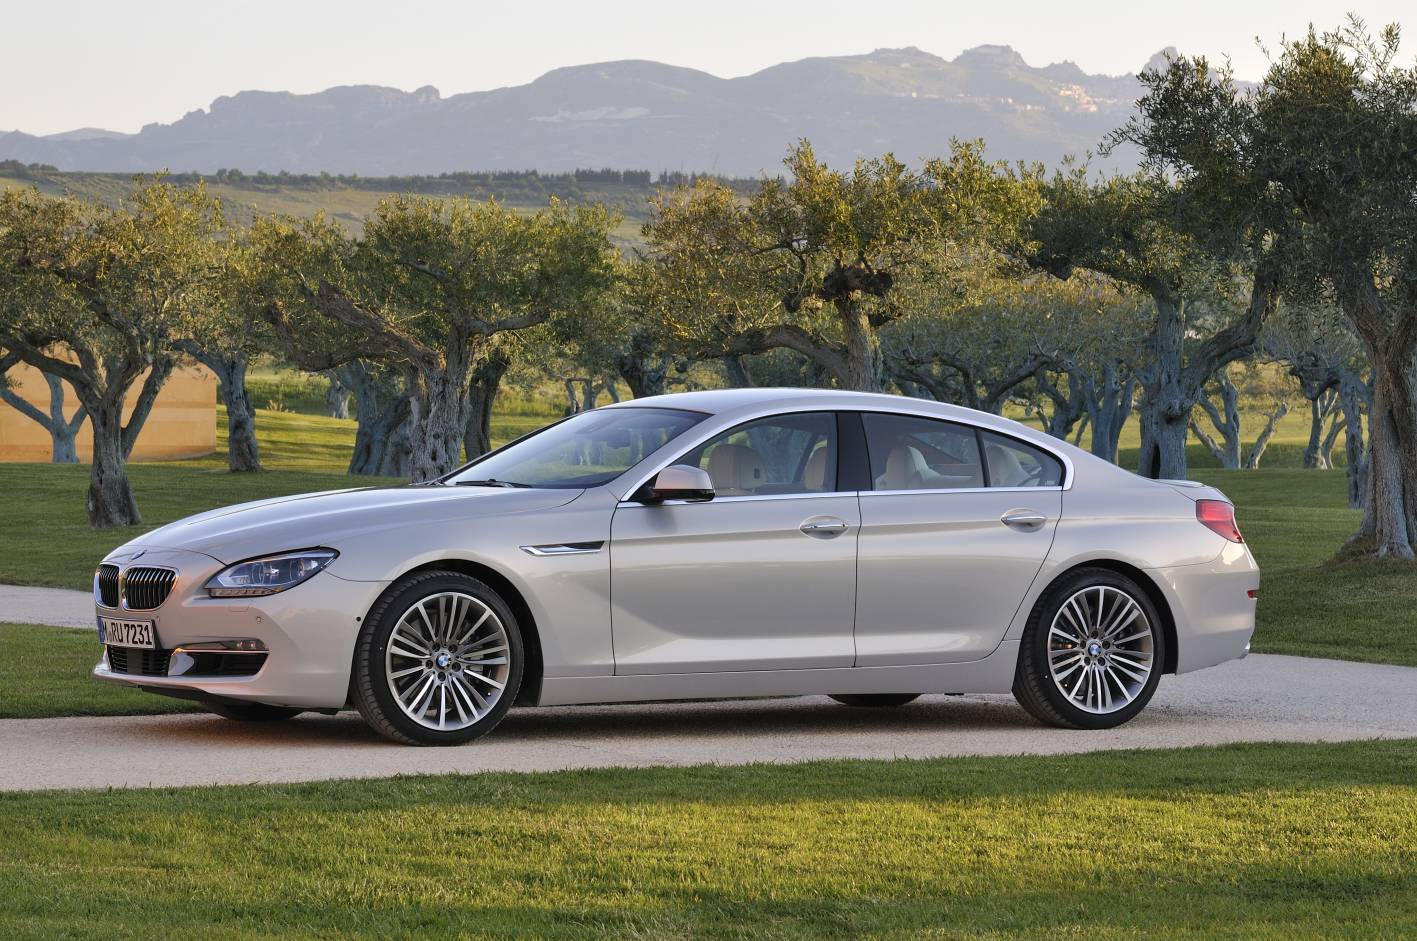 BMW Cars - News: 6-Series Gran Coupé on sale